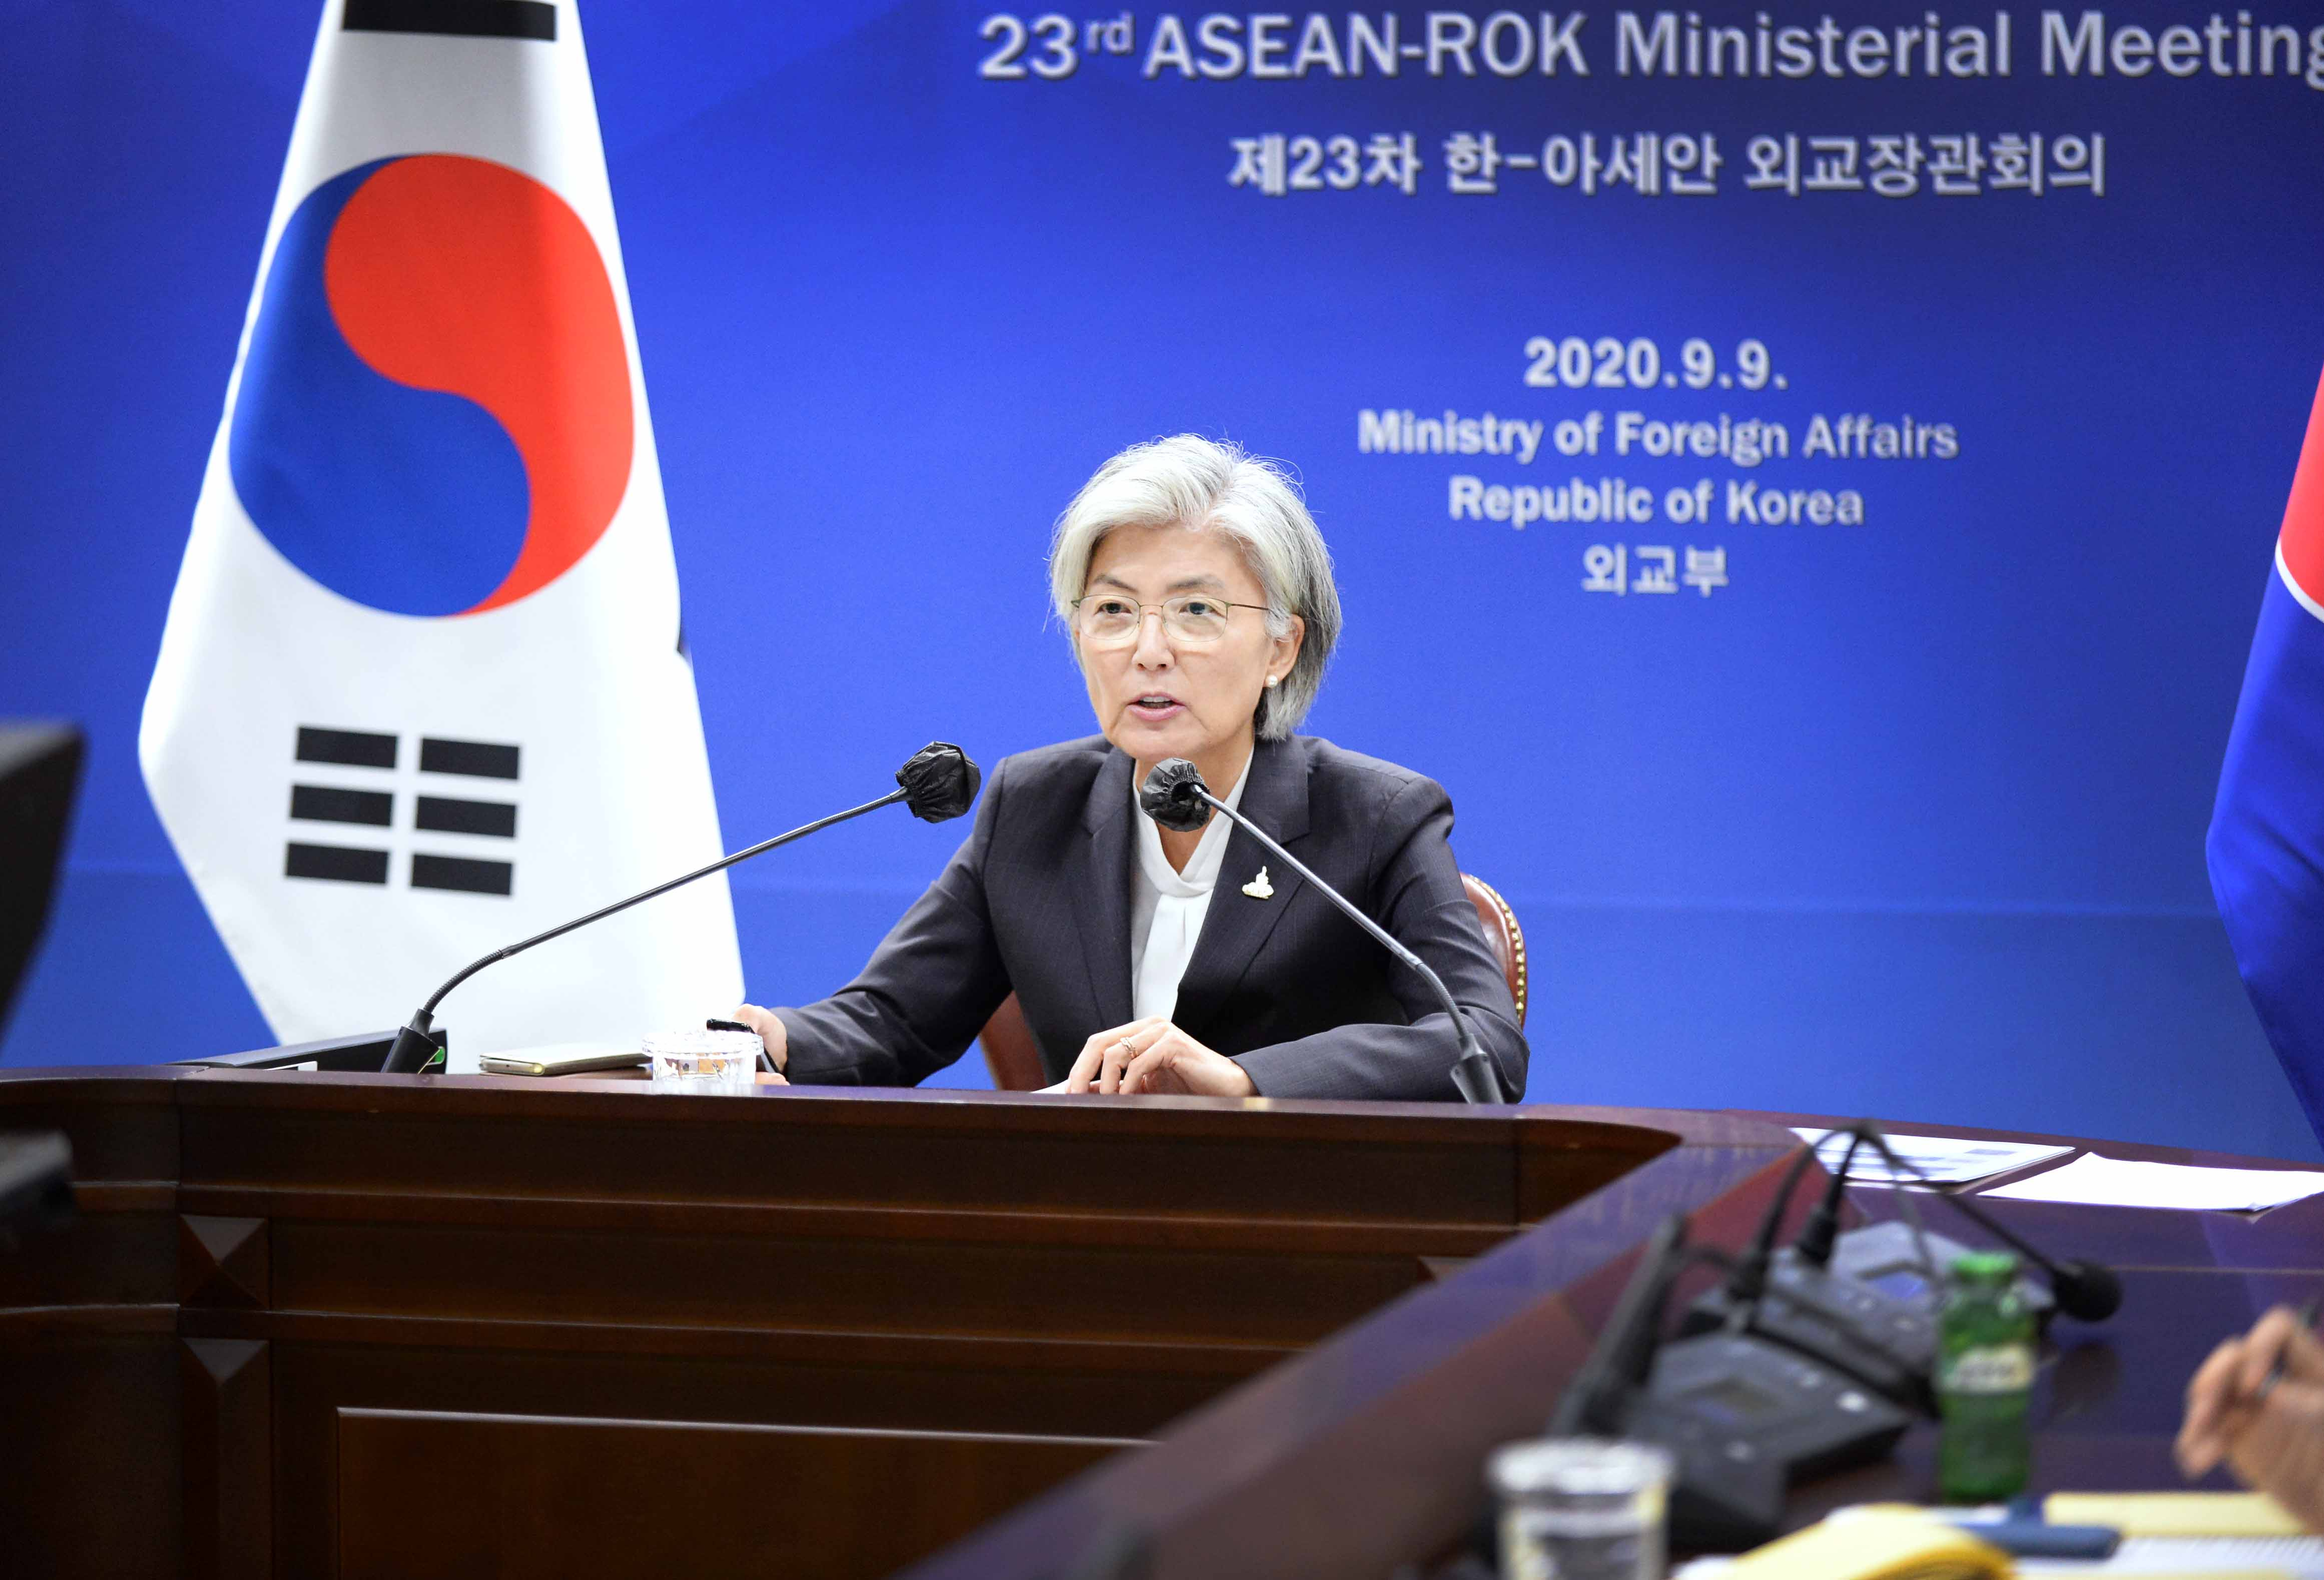 Minister of Foreign Affairs Attends 23rd ASEAN-ROK Foreign Ministers' Meeting